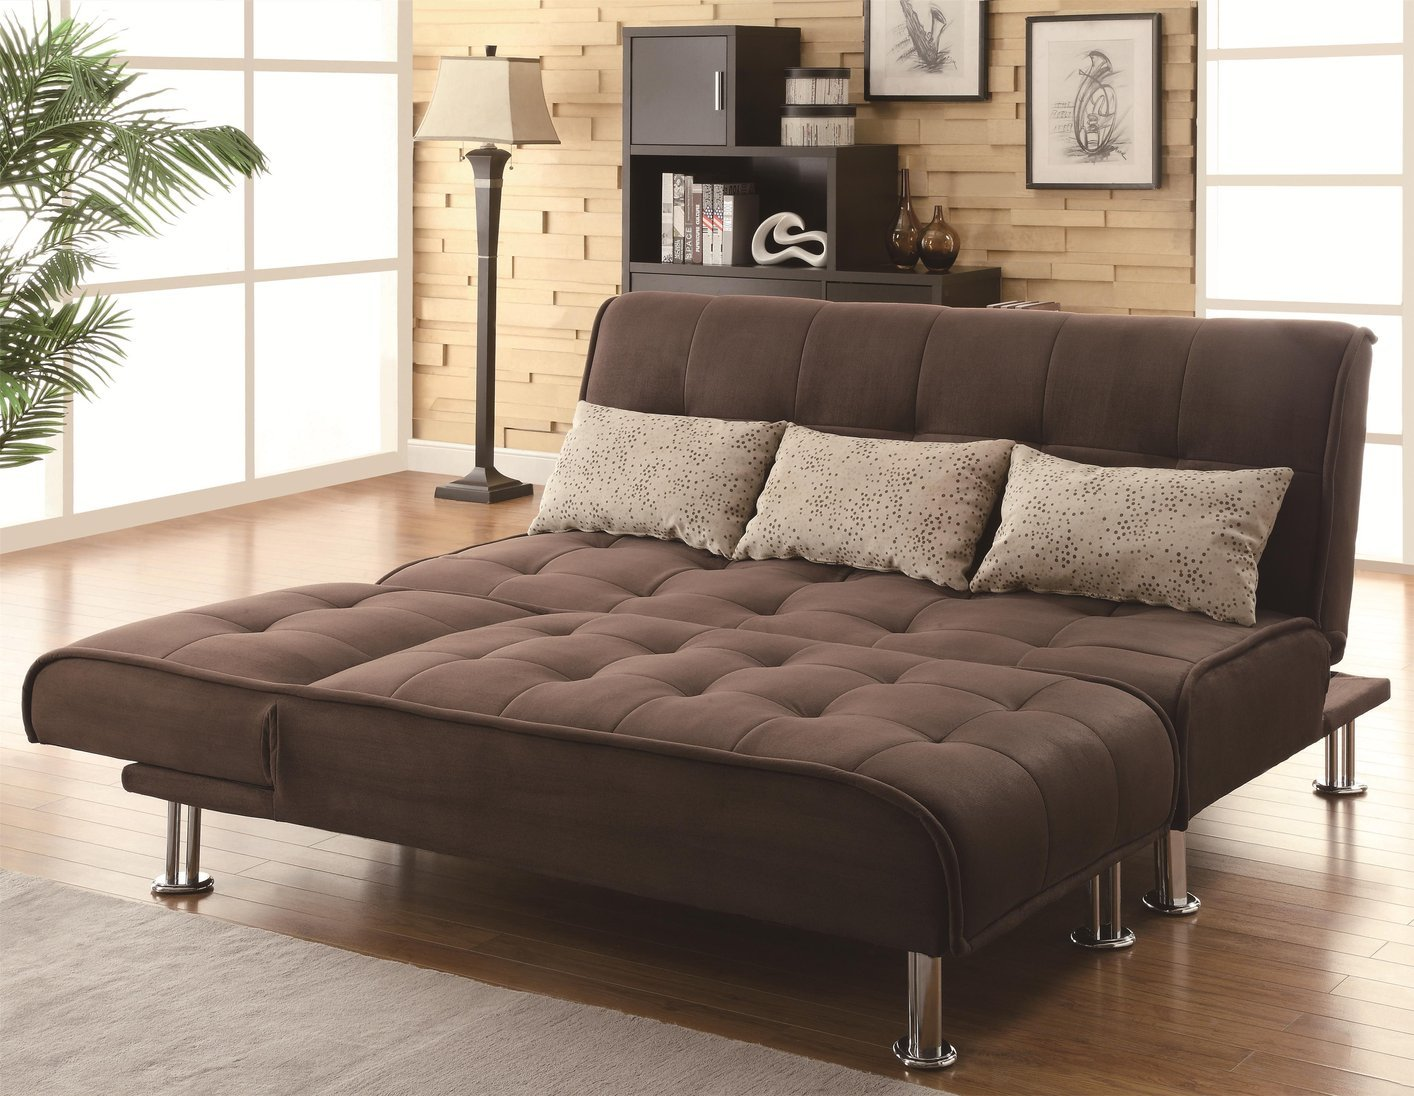 Coaster 300277 Brown Fabric Chaise Lounge Steal A Sofa